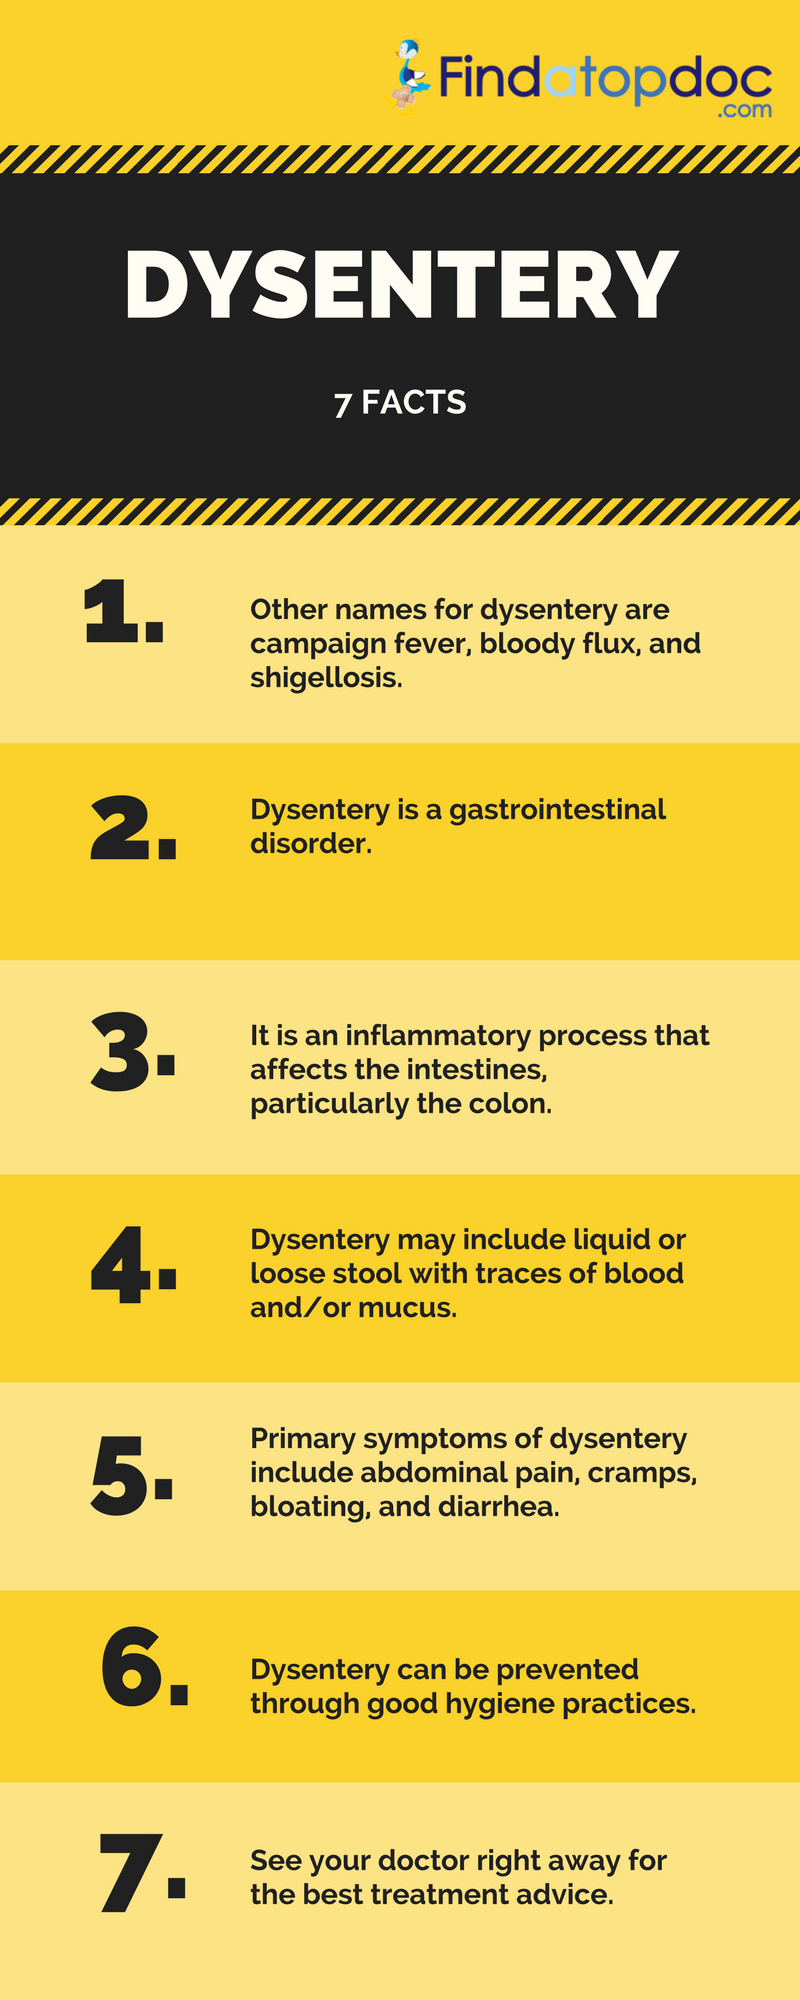 Dysentery: symptoms and treatment of intestinal disease